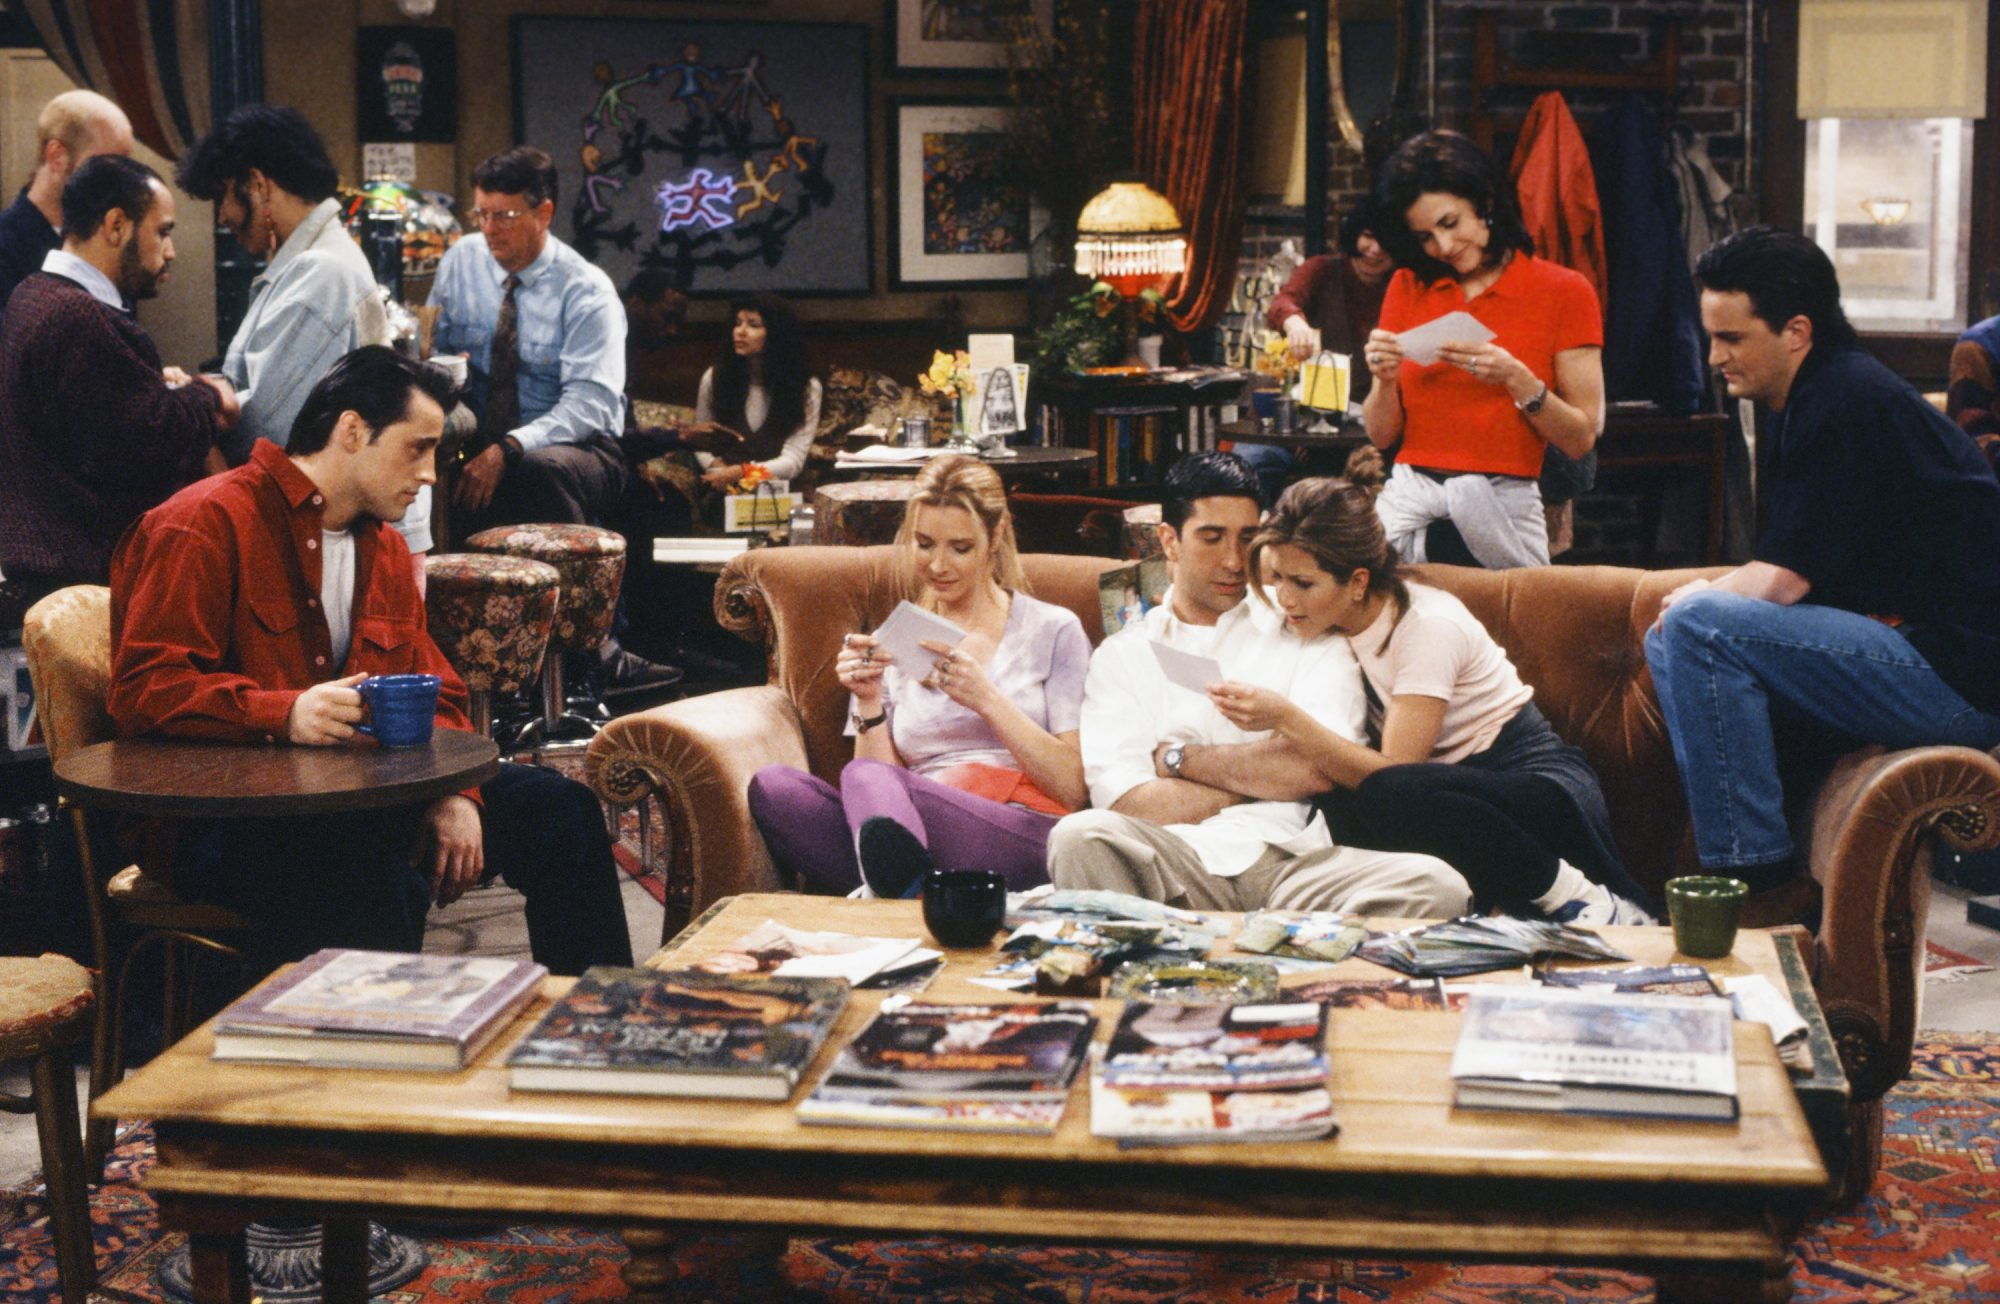 Central Perk, our home away from home